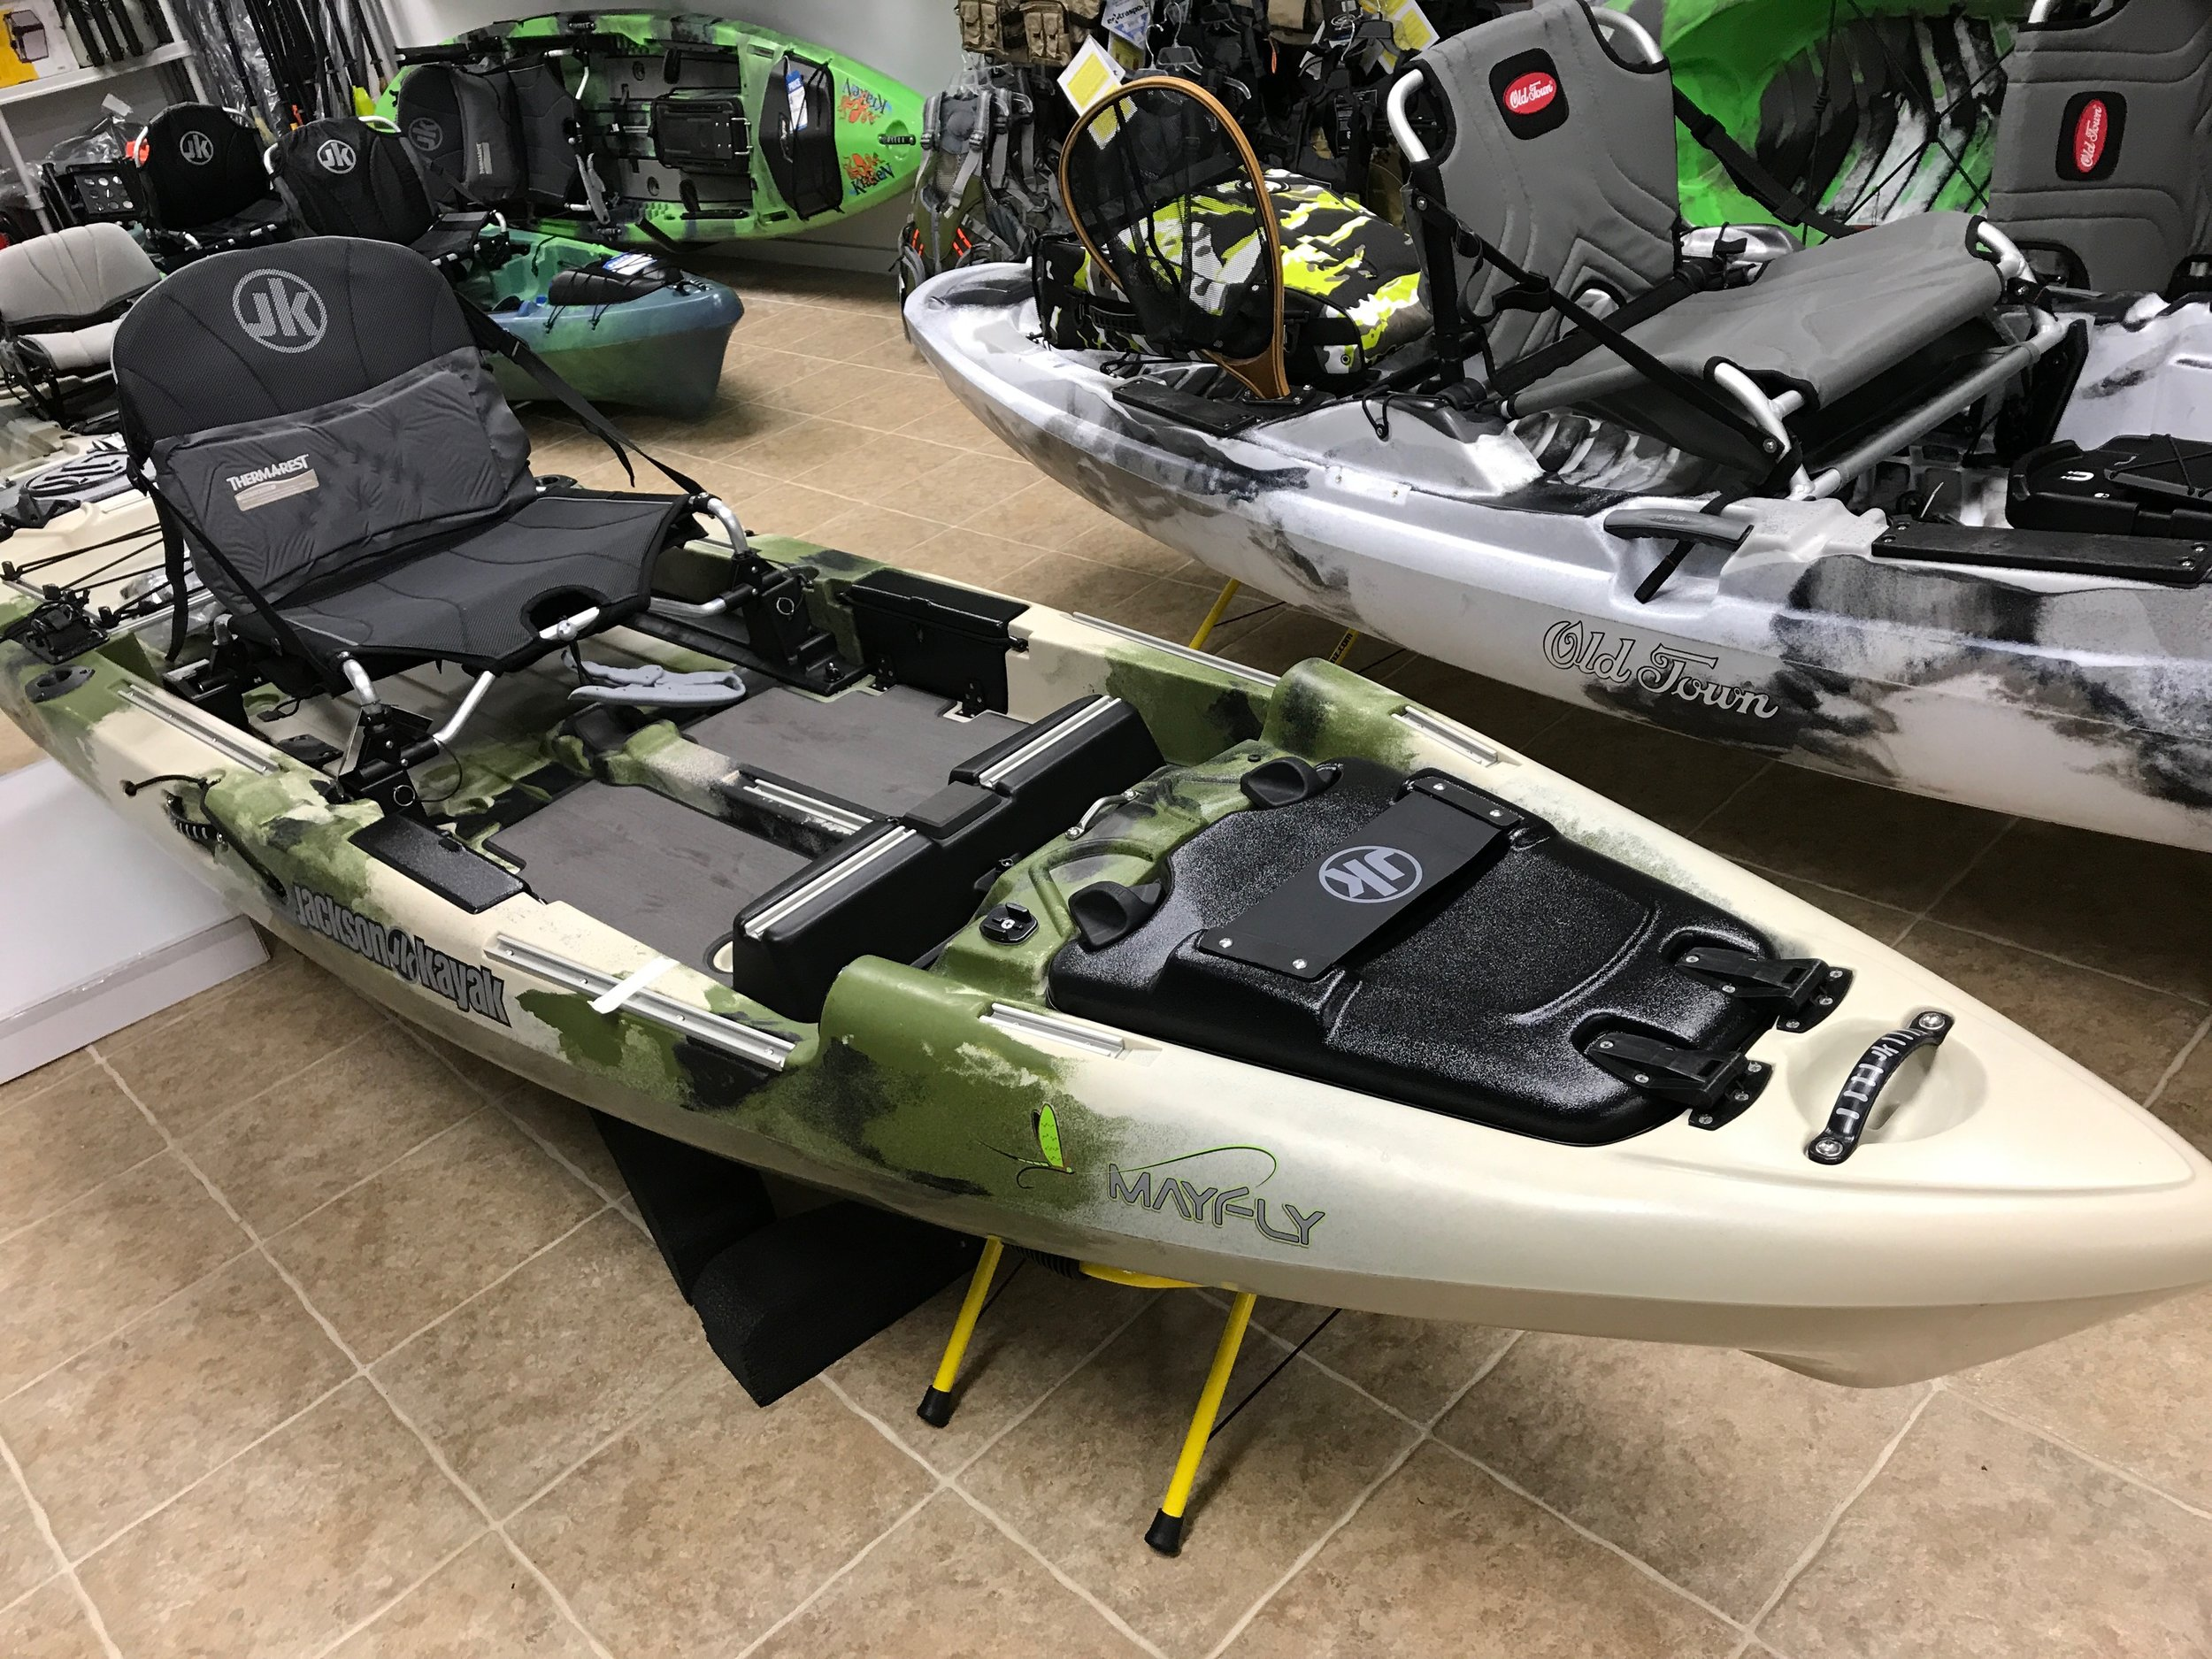 The is no shortage of storage space on the Jackson Mayfly.